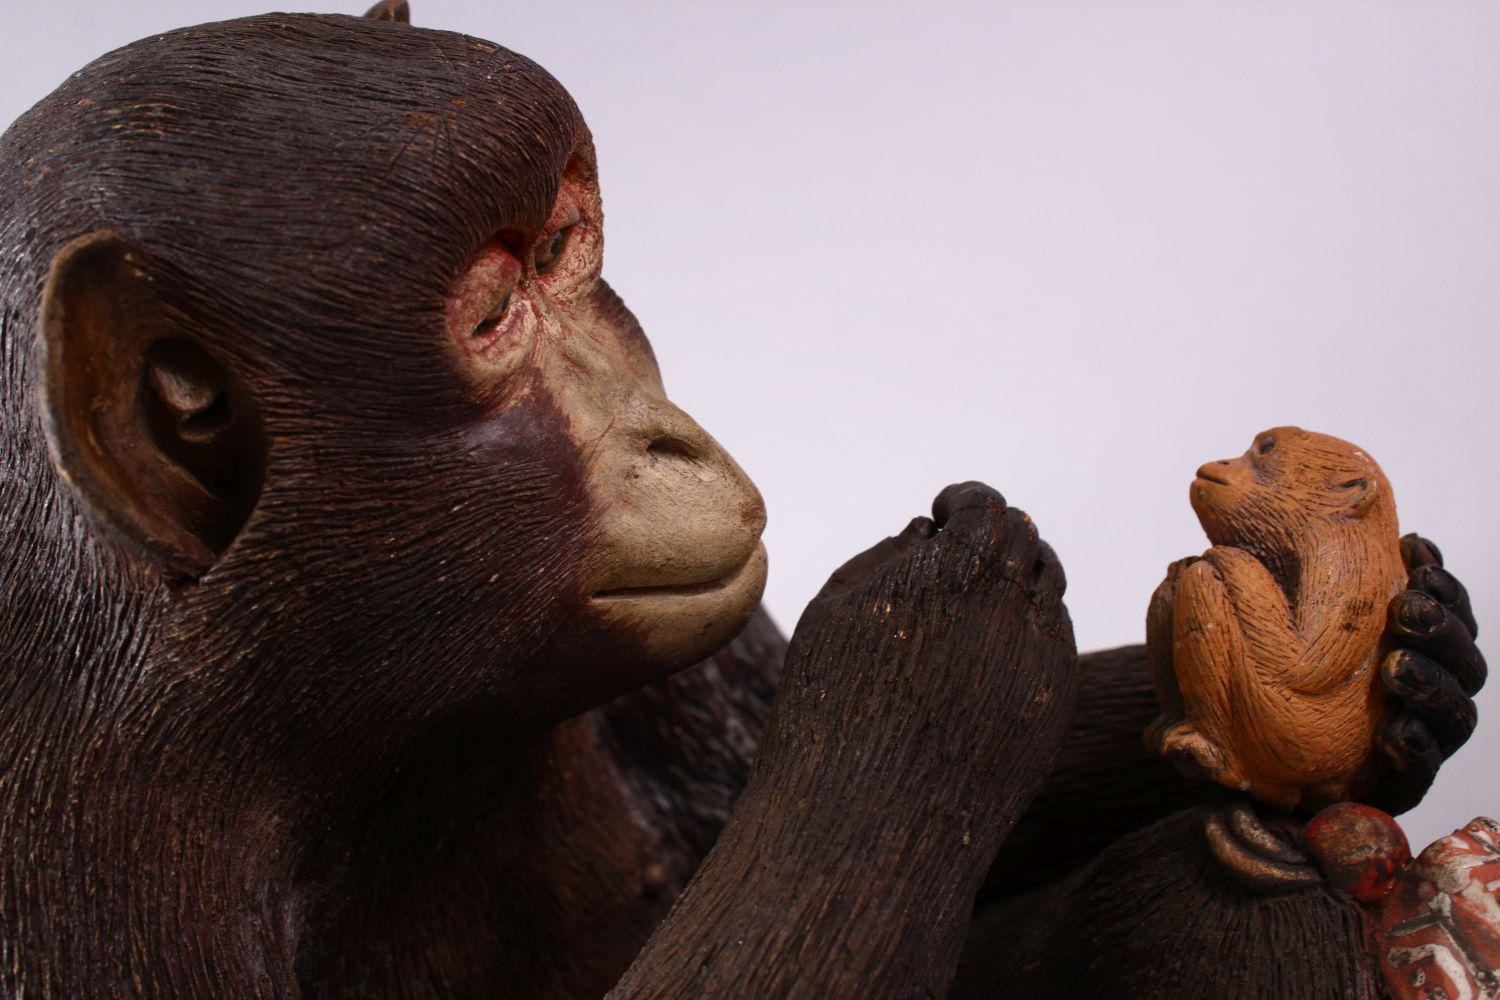 A JAPANESE POTTERY / TERRACOTTA MODEL OF A SEATED MONKEY, the monkey in a seated position holding - Image 4 of 10